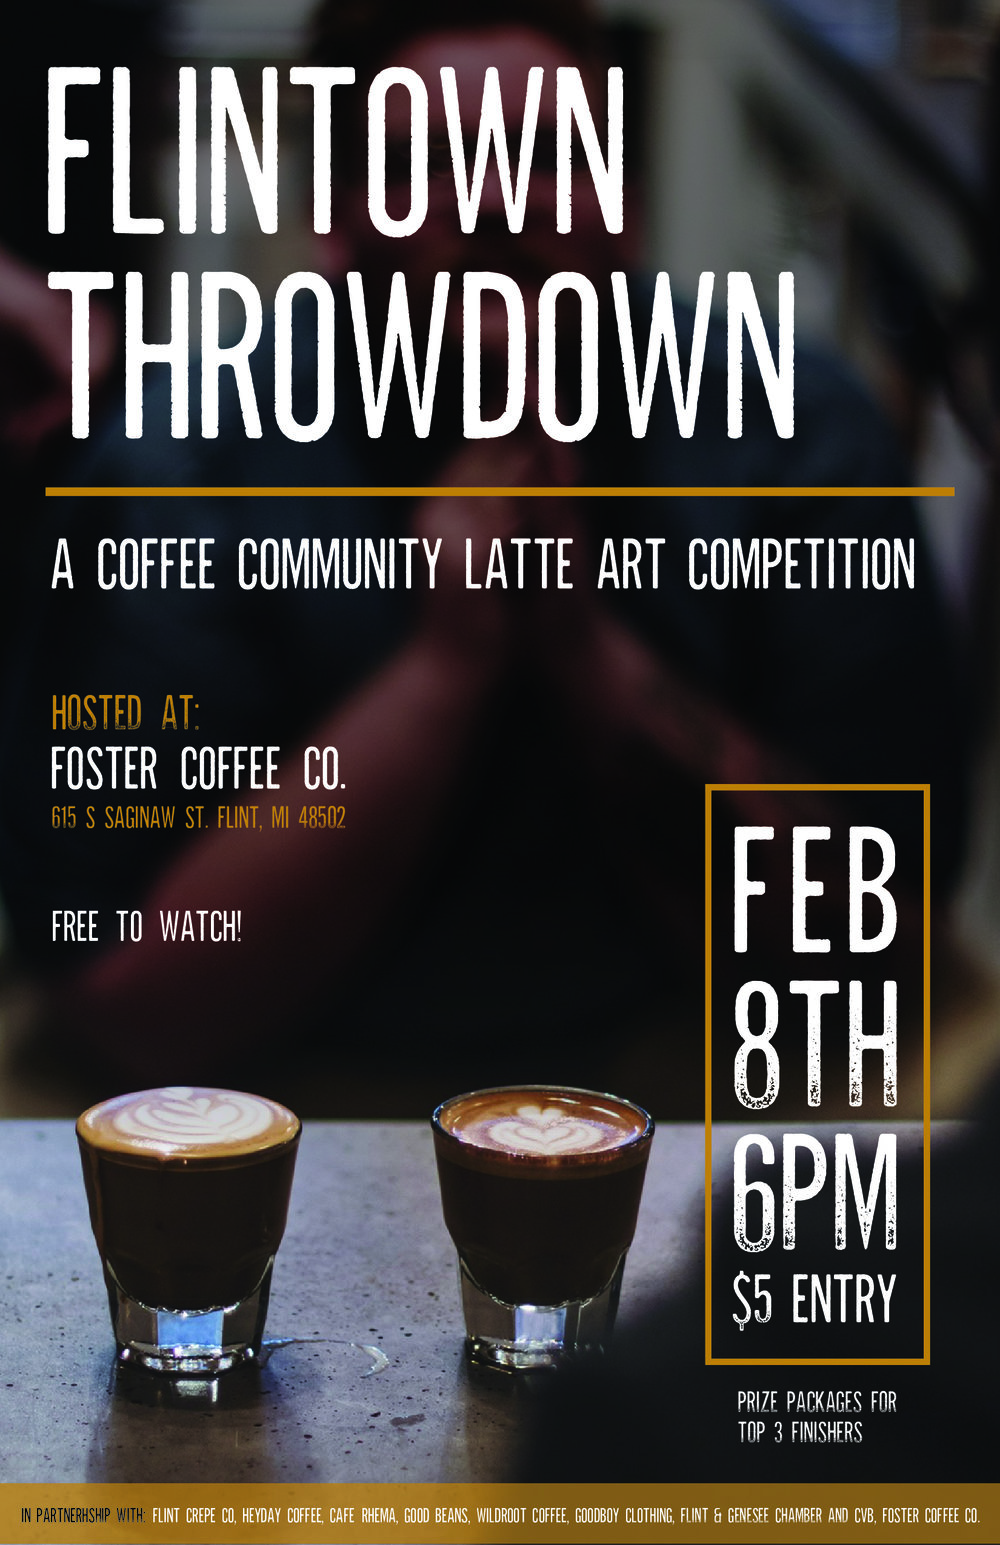 Flinttown_throwdown_v5-01.jpg